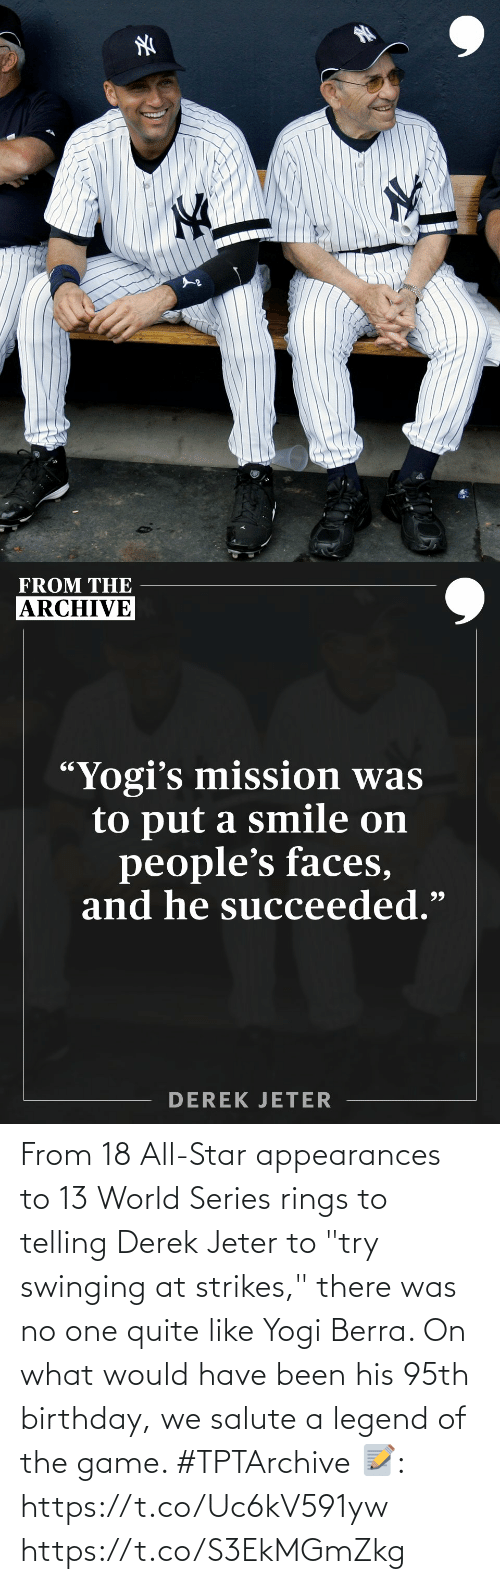 """Telling: From 18 All-Star appearances to 13 WorldSeries rings to telling Derek Jeter to """"try swinging at strikes,"""" there was no one quite like Yogi Berra.   On what would have been his 95th birthday, we salute a legend of the game. #TPTArchive  📝: https://t.co/Uc6kV591yw https://t.co/S3EkMGmZkg"""